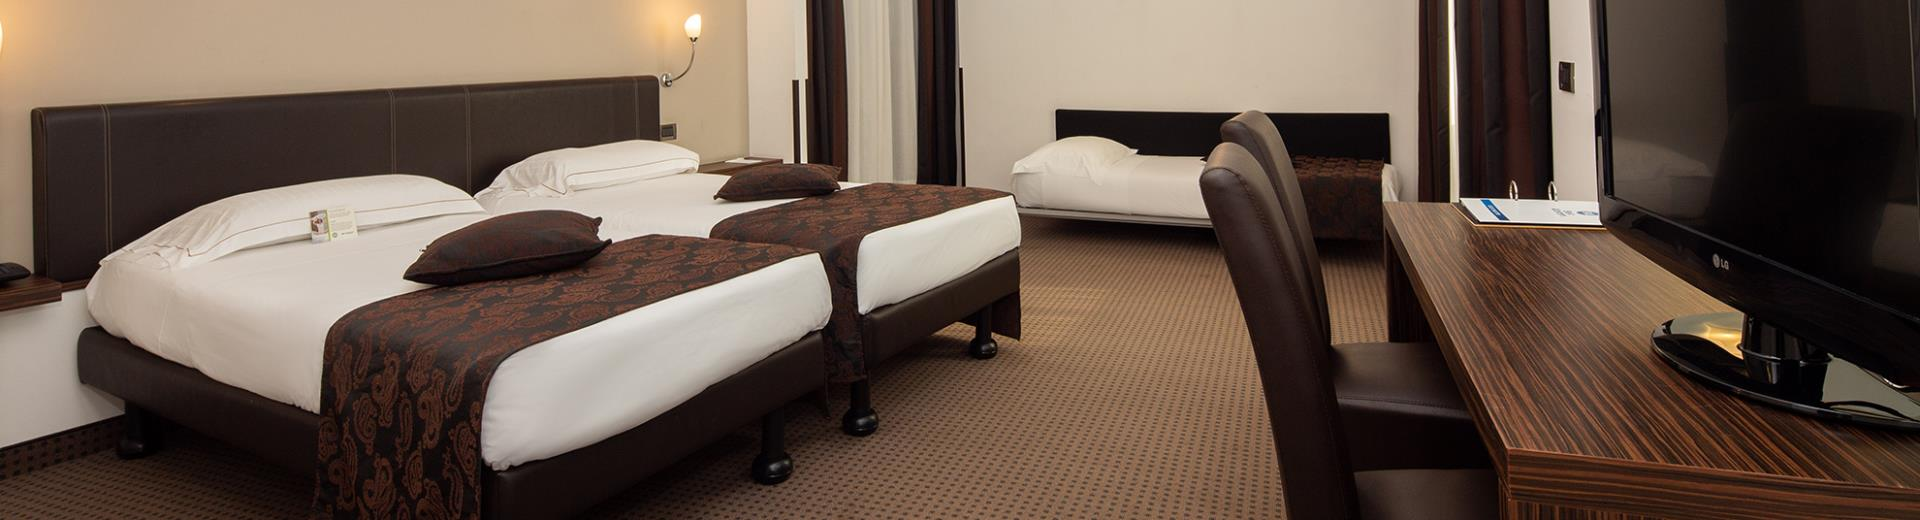 If you''re traveling with friends, choose the Triple Rooms of Hotel Biri, modern 4-star in Padua!